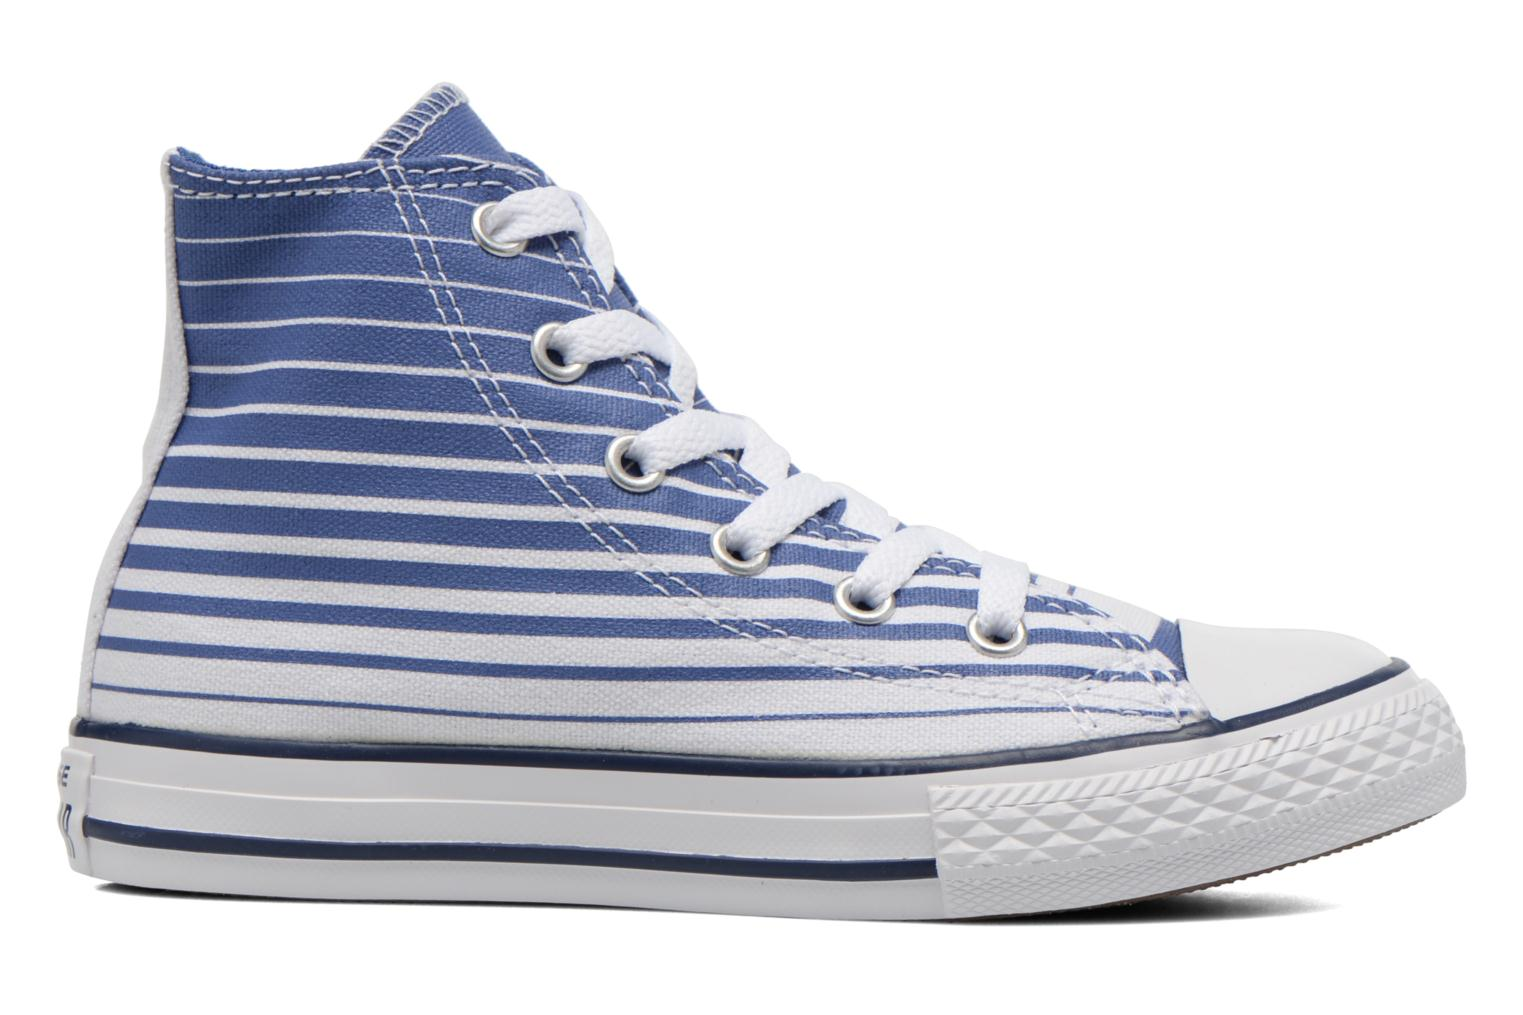 Chuck Taylor All Star Hi Roadtrip Blue/White/Natural